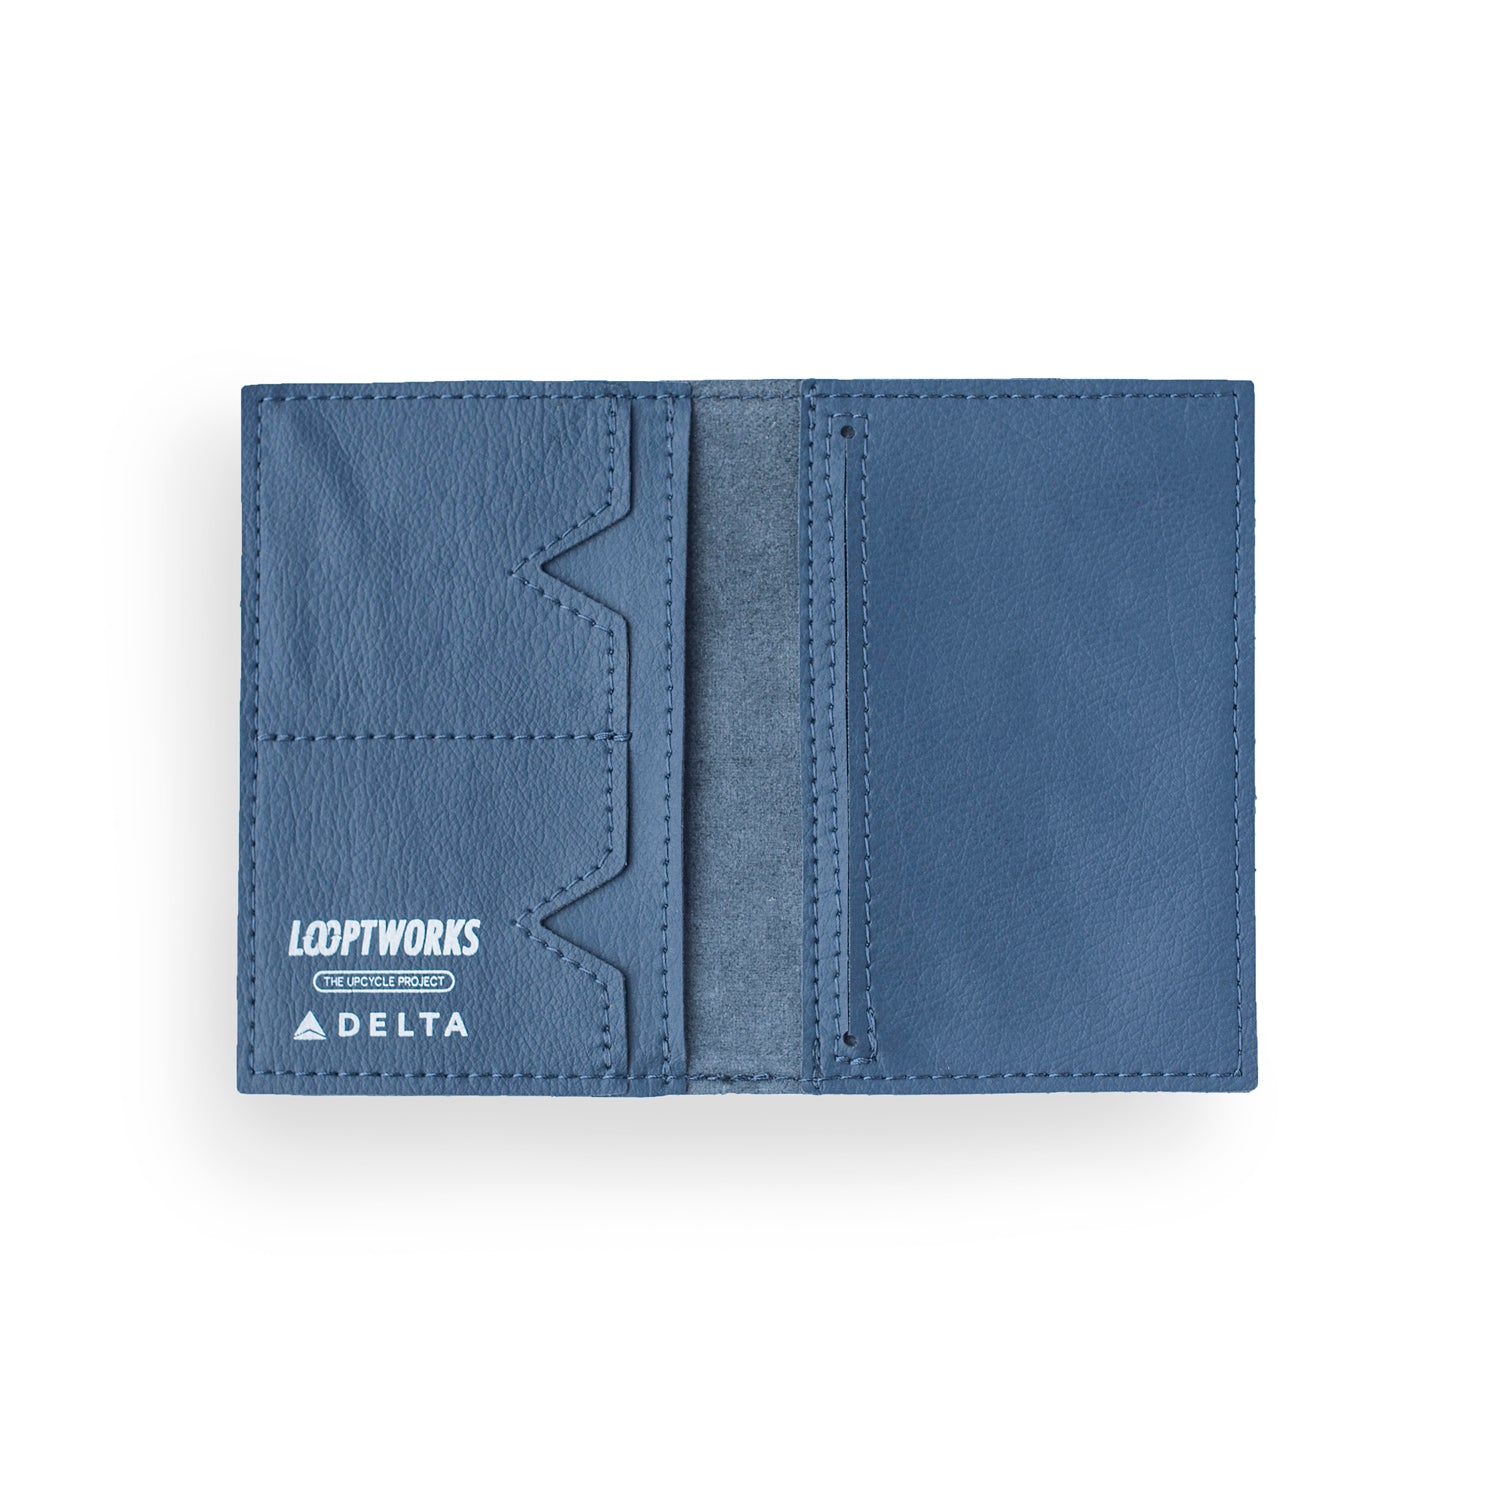 Delta Deluxe Passport Wallet Accessories - Looptworks